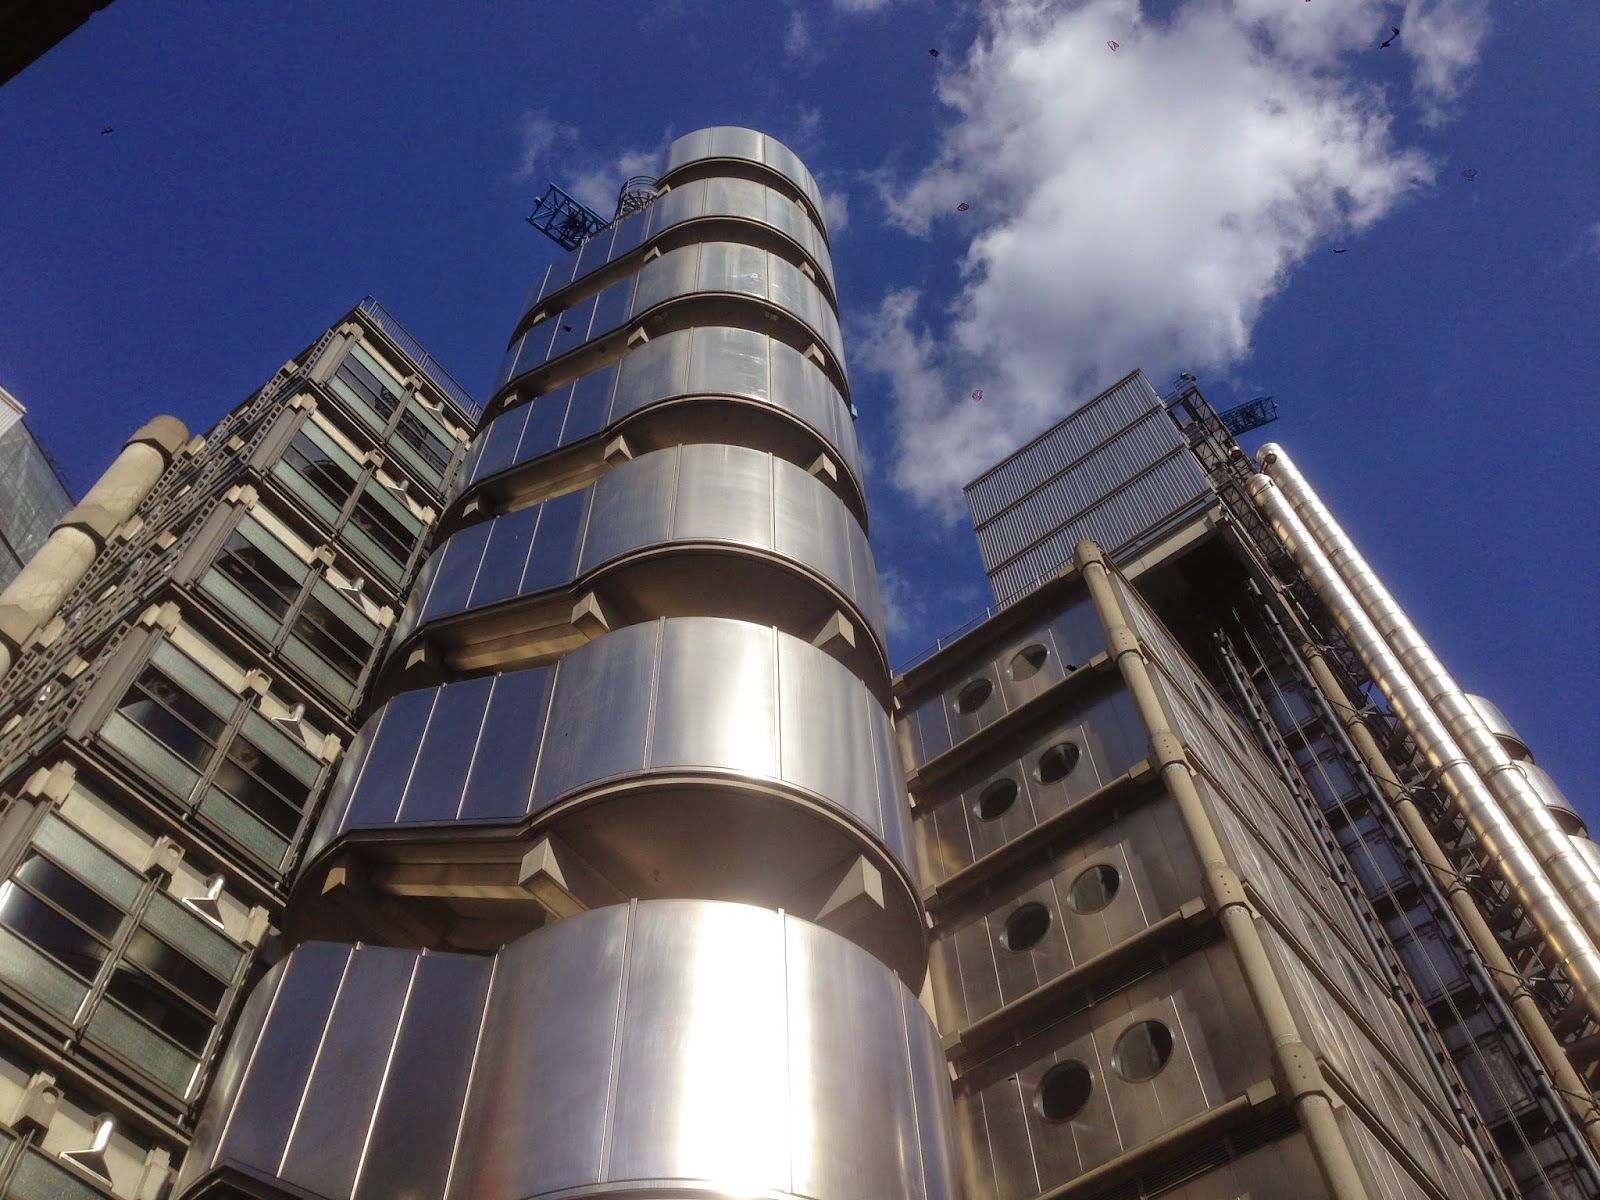 post war architecture in london a walk through the city